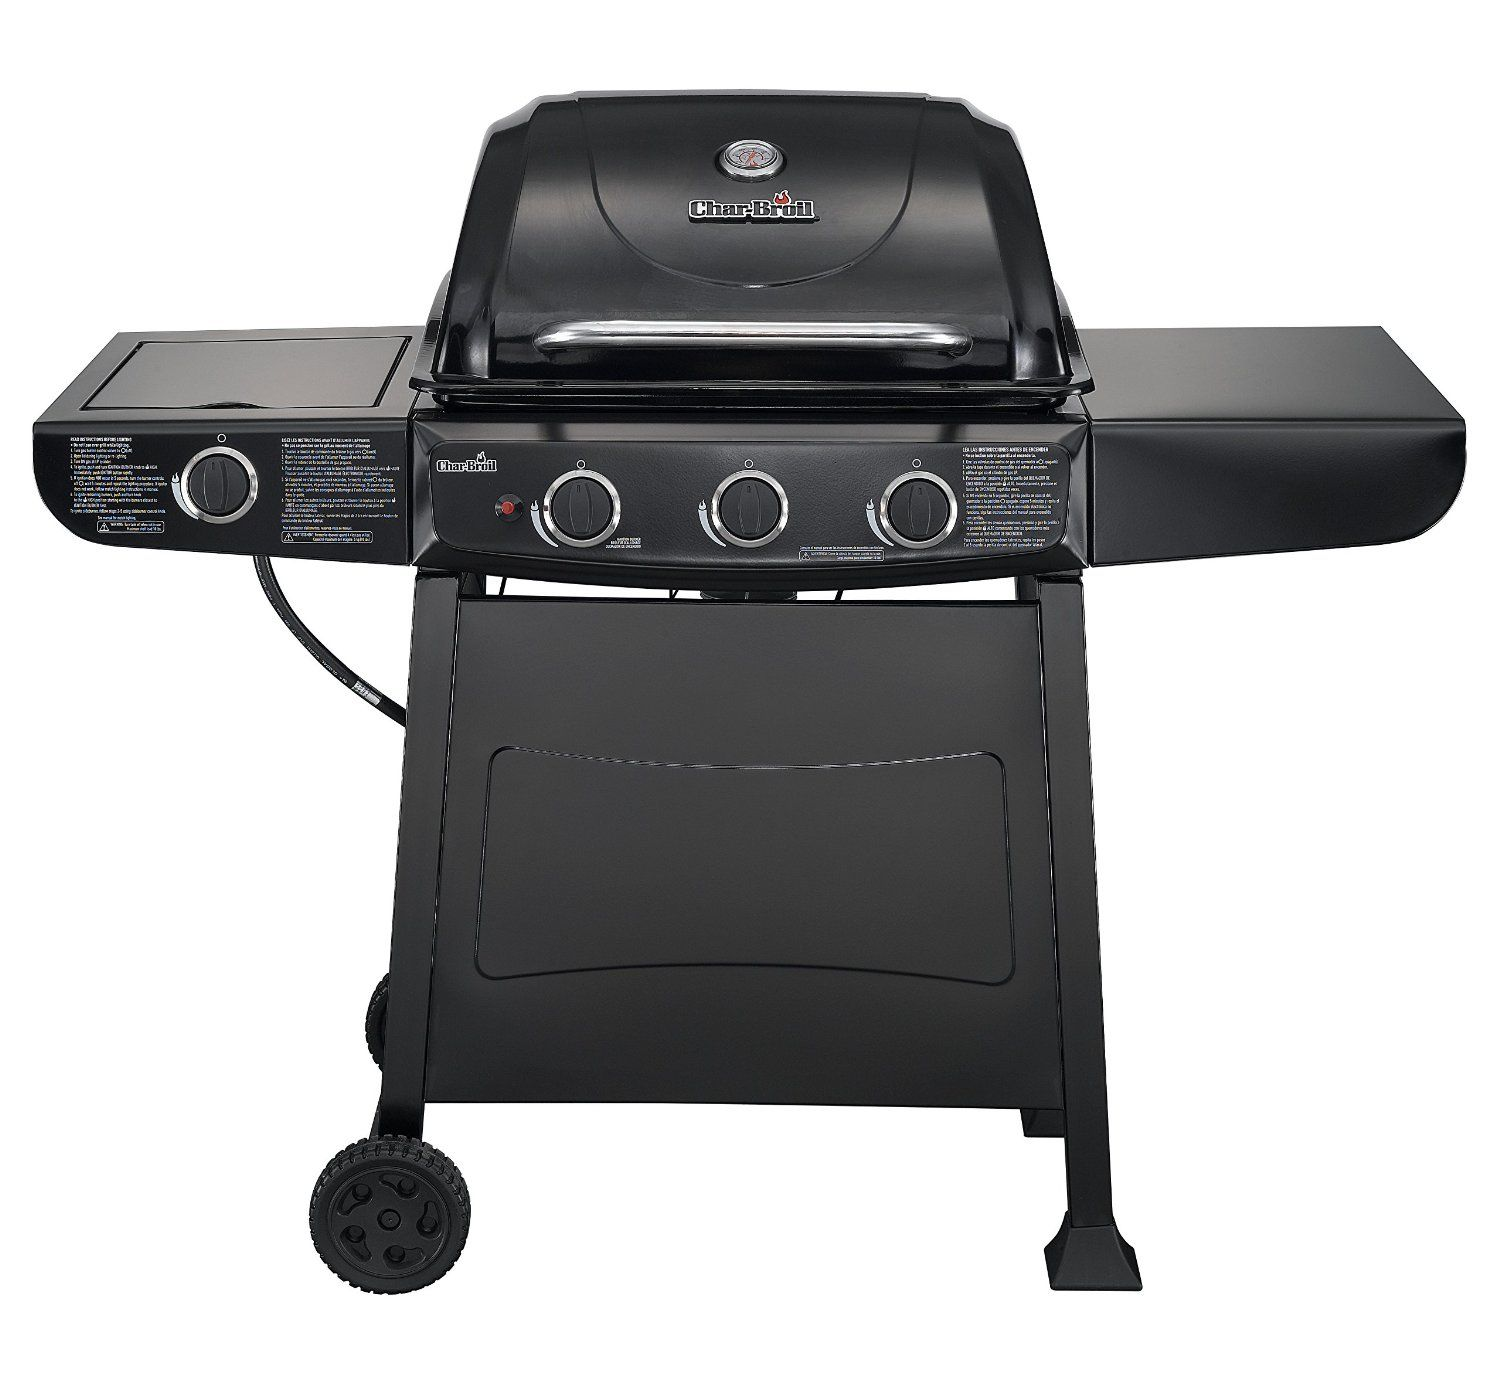 Check out our review on the next hottest bud friendly gas grill